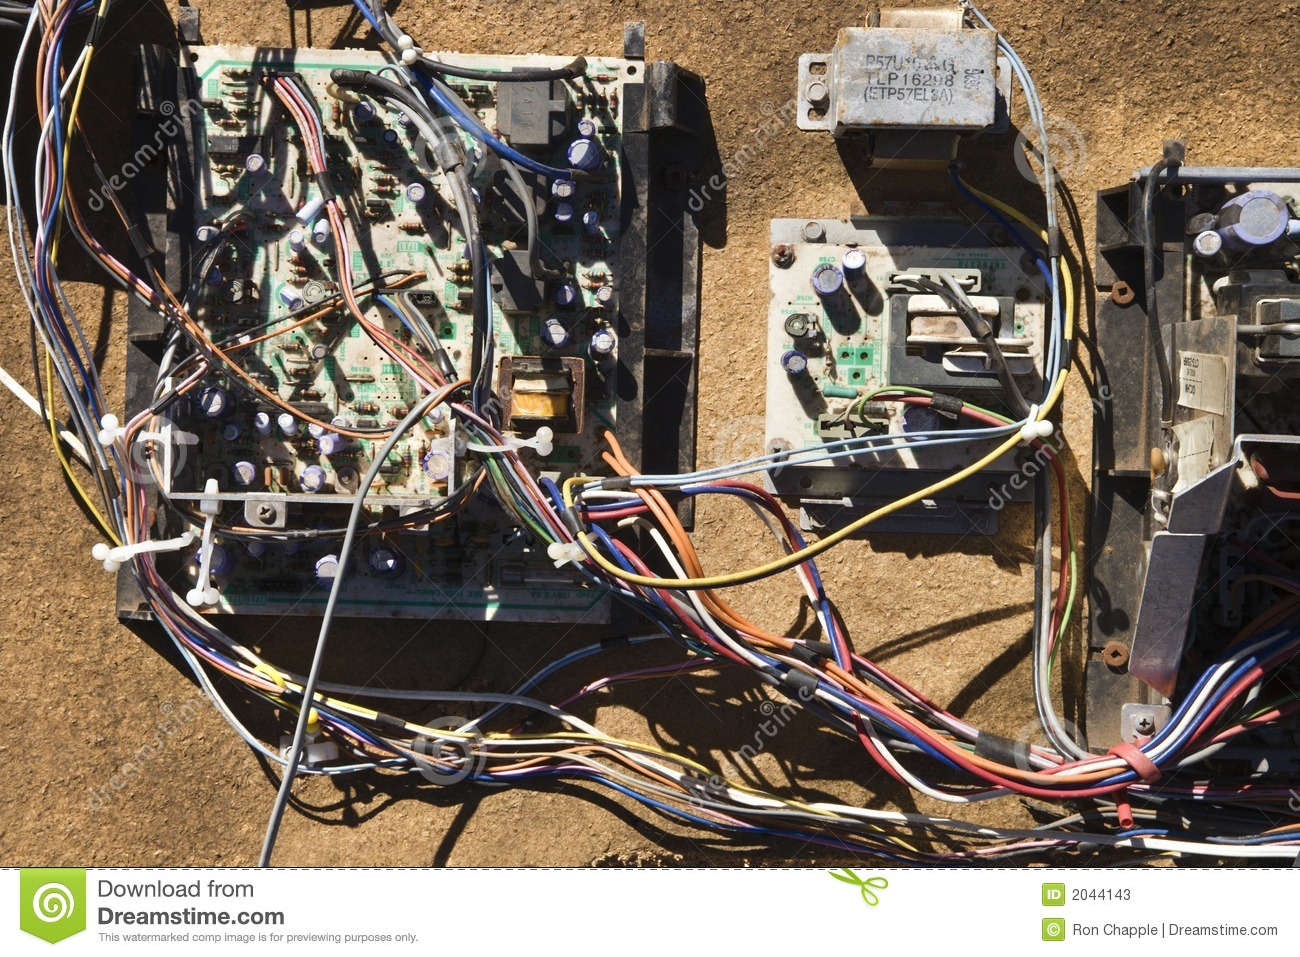 wires and electrical car parts stock image image of life rh dreamstime com Auto Electrical Wiring Kits Auto Electrical Wiring Supplies